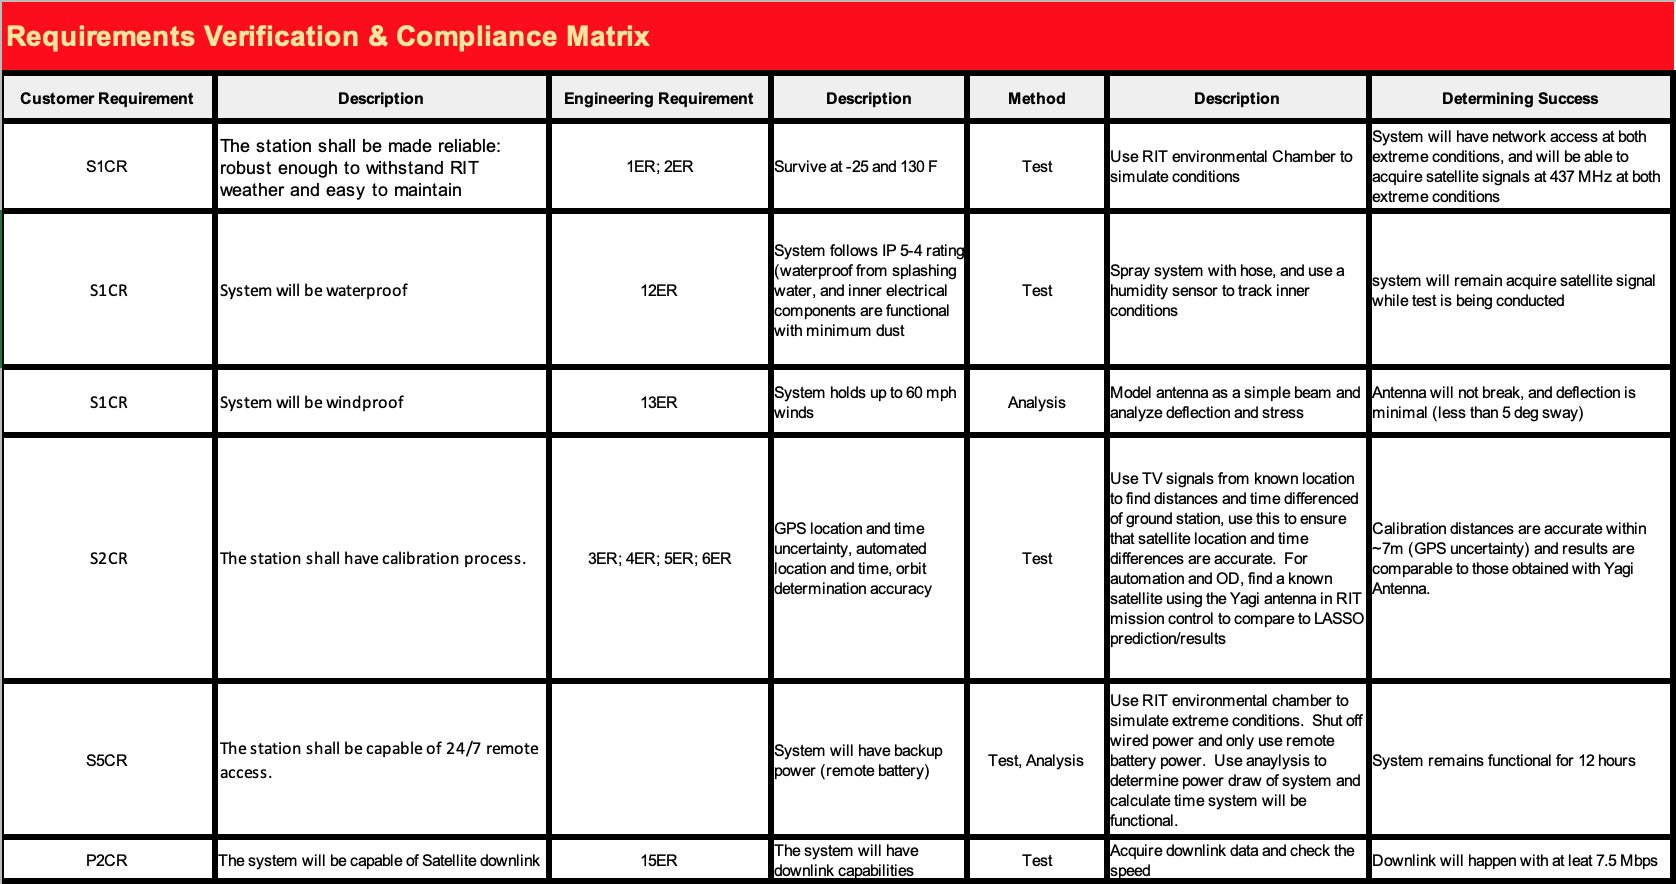 Requirements Verification and Compliance Matrix